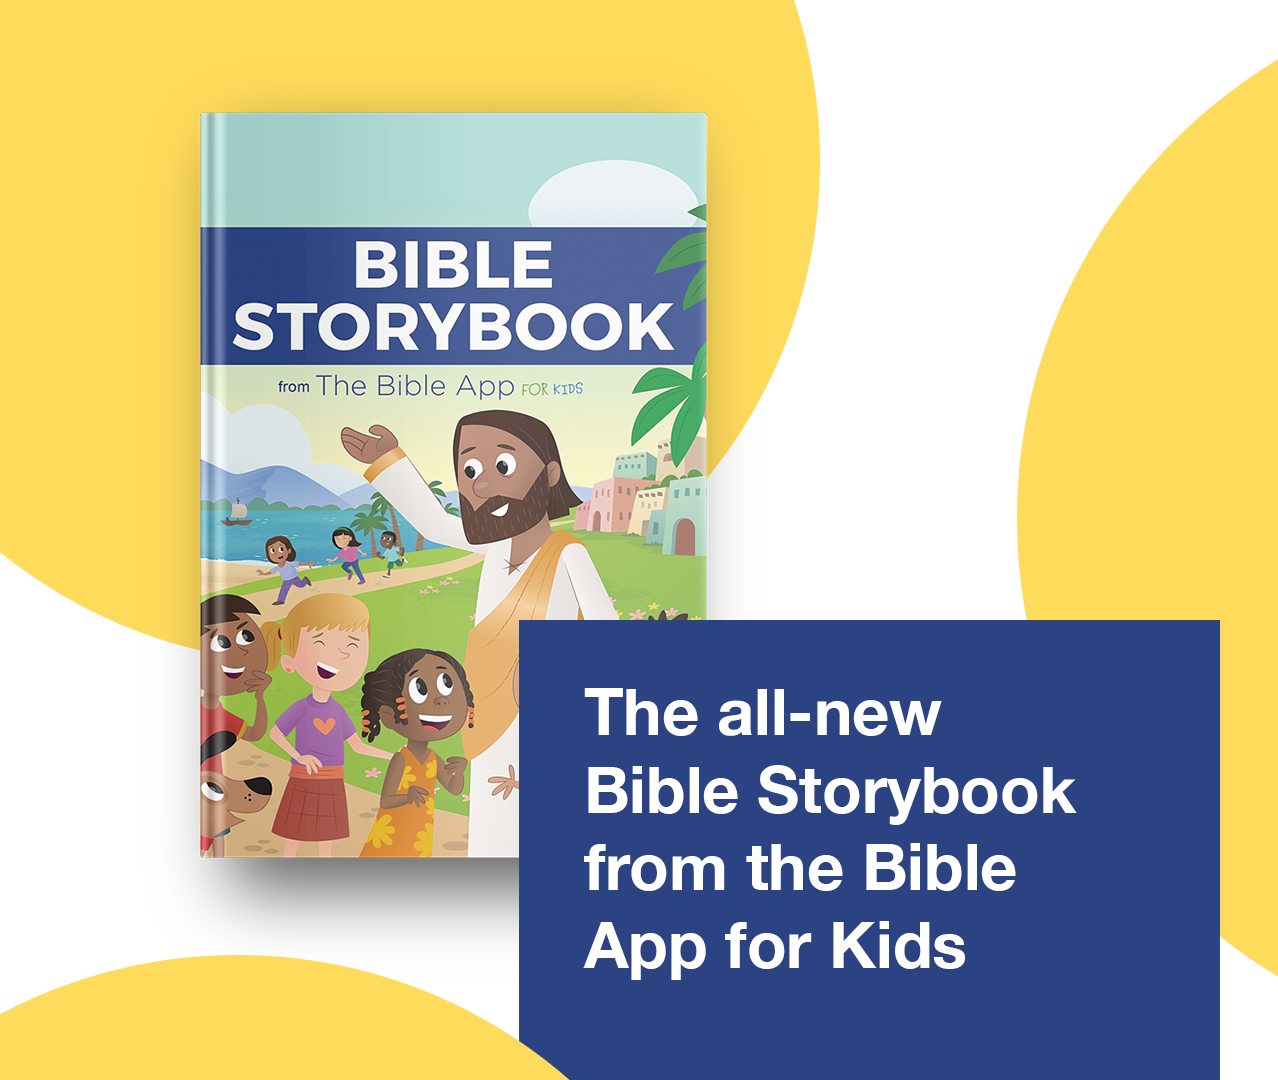 The all-new Bible Storybook from the Bible App for Kids